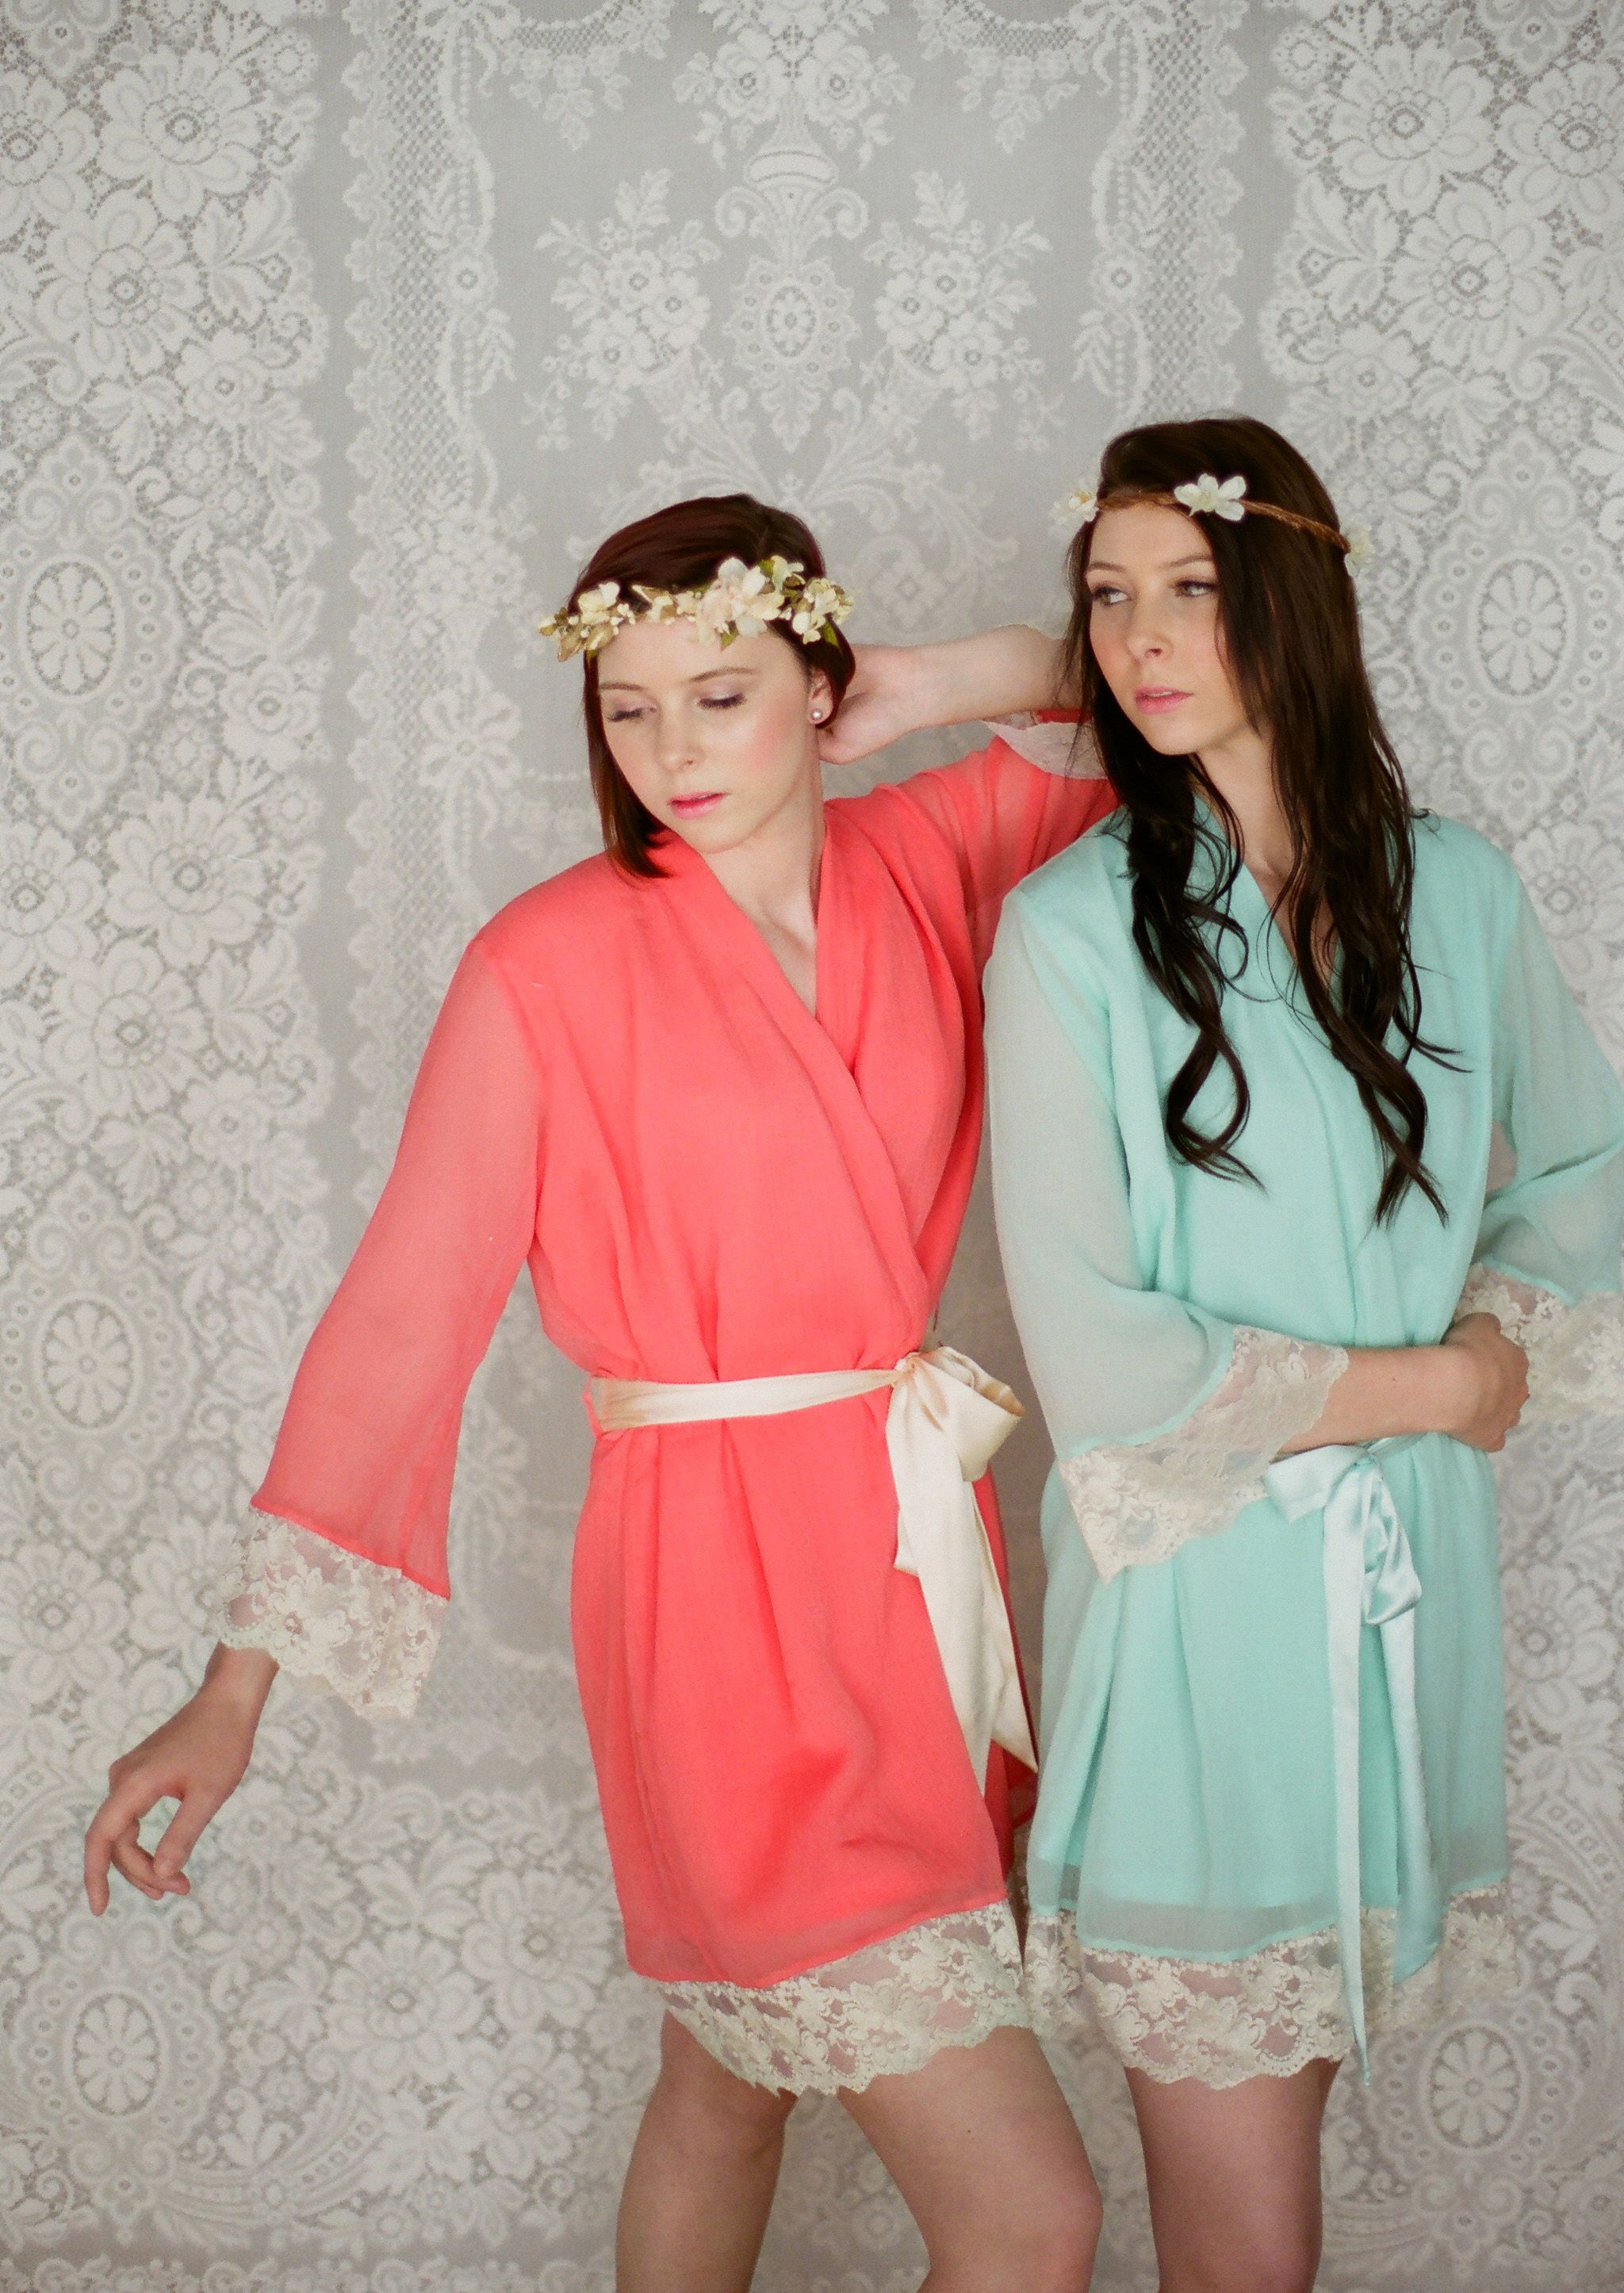 Custom lace trimmed chiffon robes in a knee by Singing Slowly. Bridal lace  robes in pastels and bright chiffons. d0f8e2258